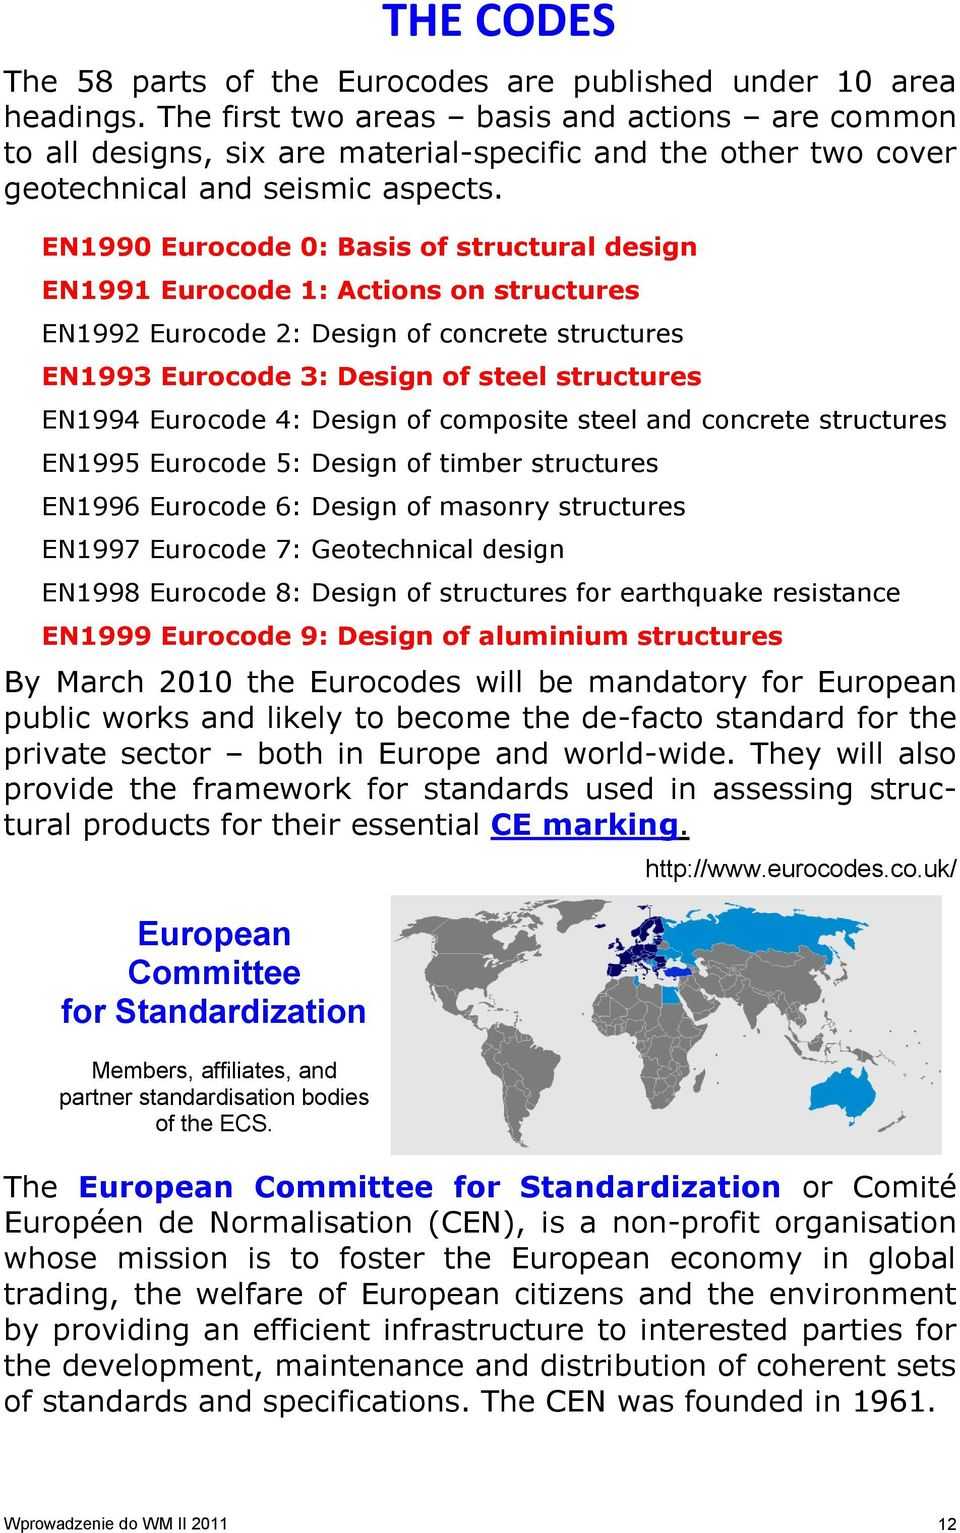 EN1990 Eurocode 0: Basis of structural design EN1991 Eurocode 1: Actions on structures EN1992 Eurocode 2: Design of concrete structures EN1993 Eurocode 3: Design of steel structures EN1994 Eurocode